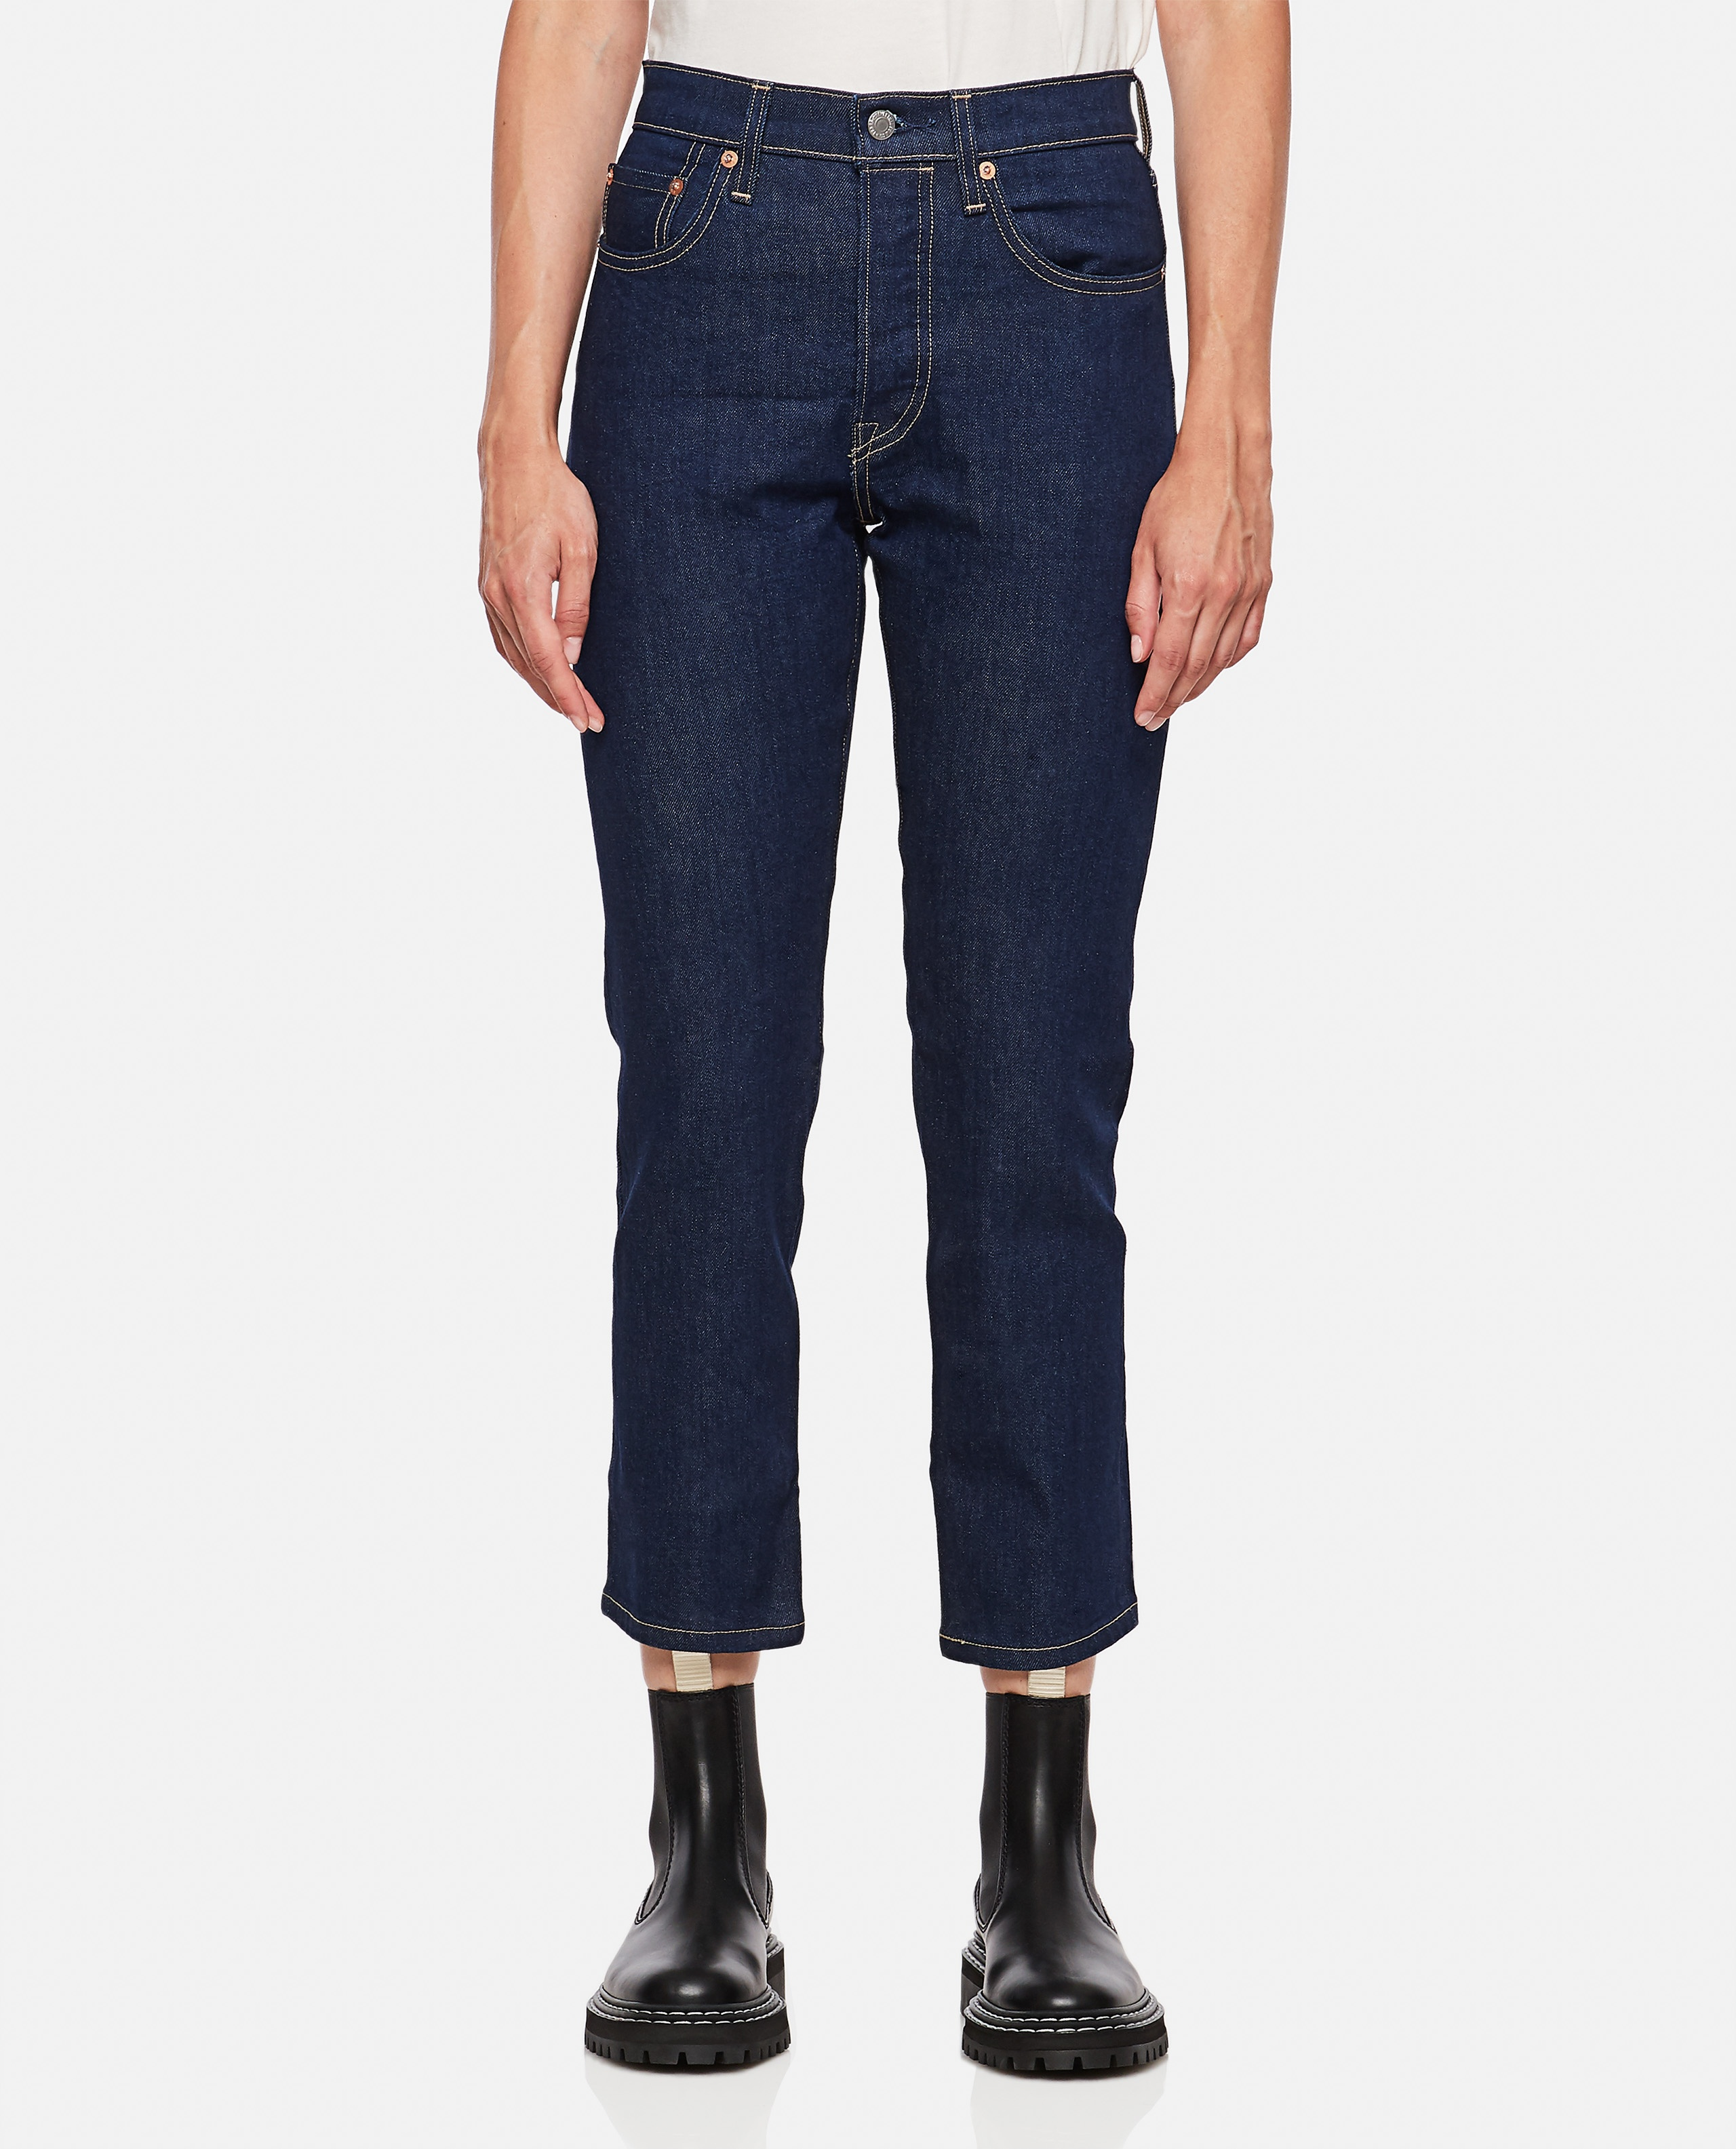 LEVI'S MADE & CRAFTED 501 CROP JEANS Women Levi Strauss & Co. 000352880051346 1